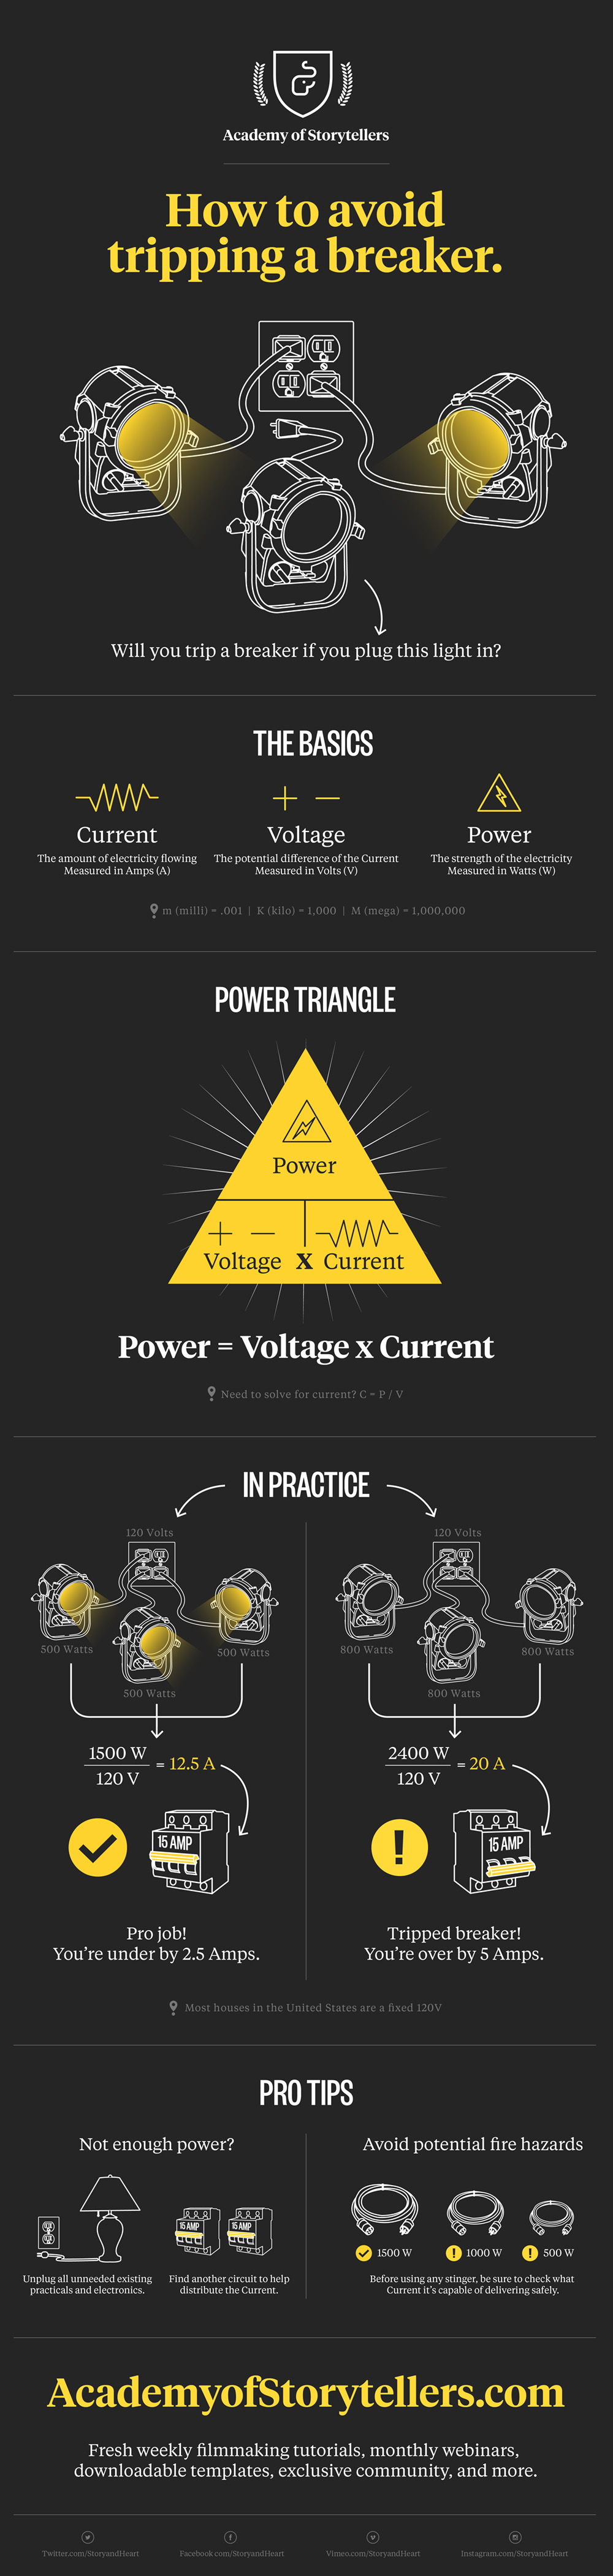 How To Avoid Tripping A Breaker With Your Lights Infographic 15 Amp Old Fuse Box Want Share This On Own Website Or Blog Copy And Paste Code Voila